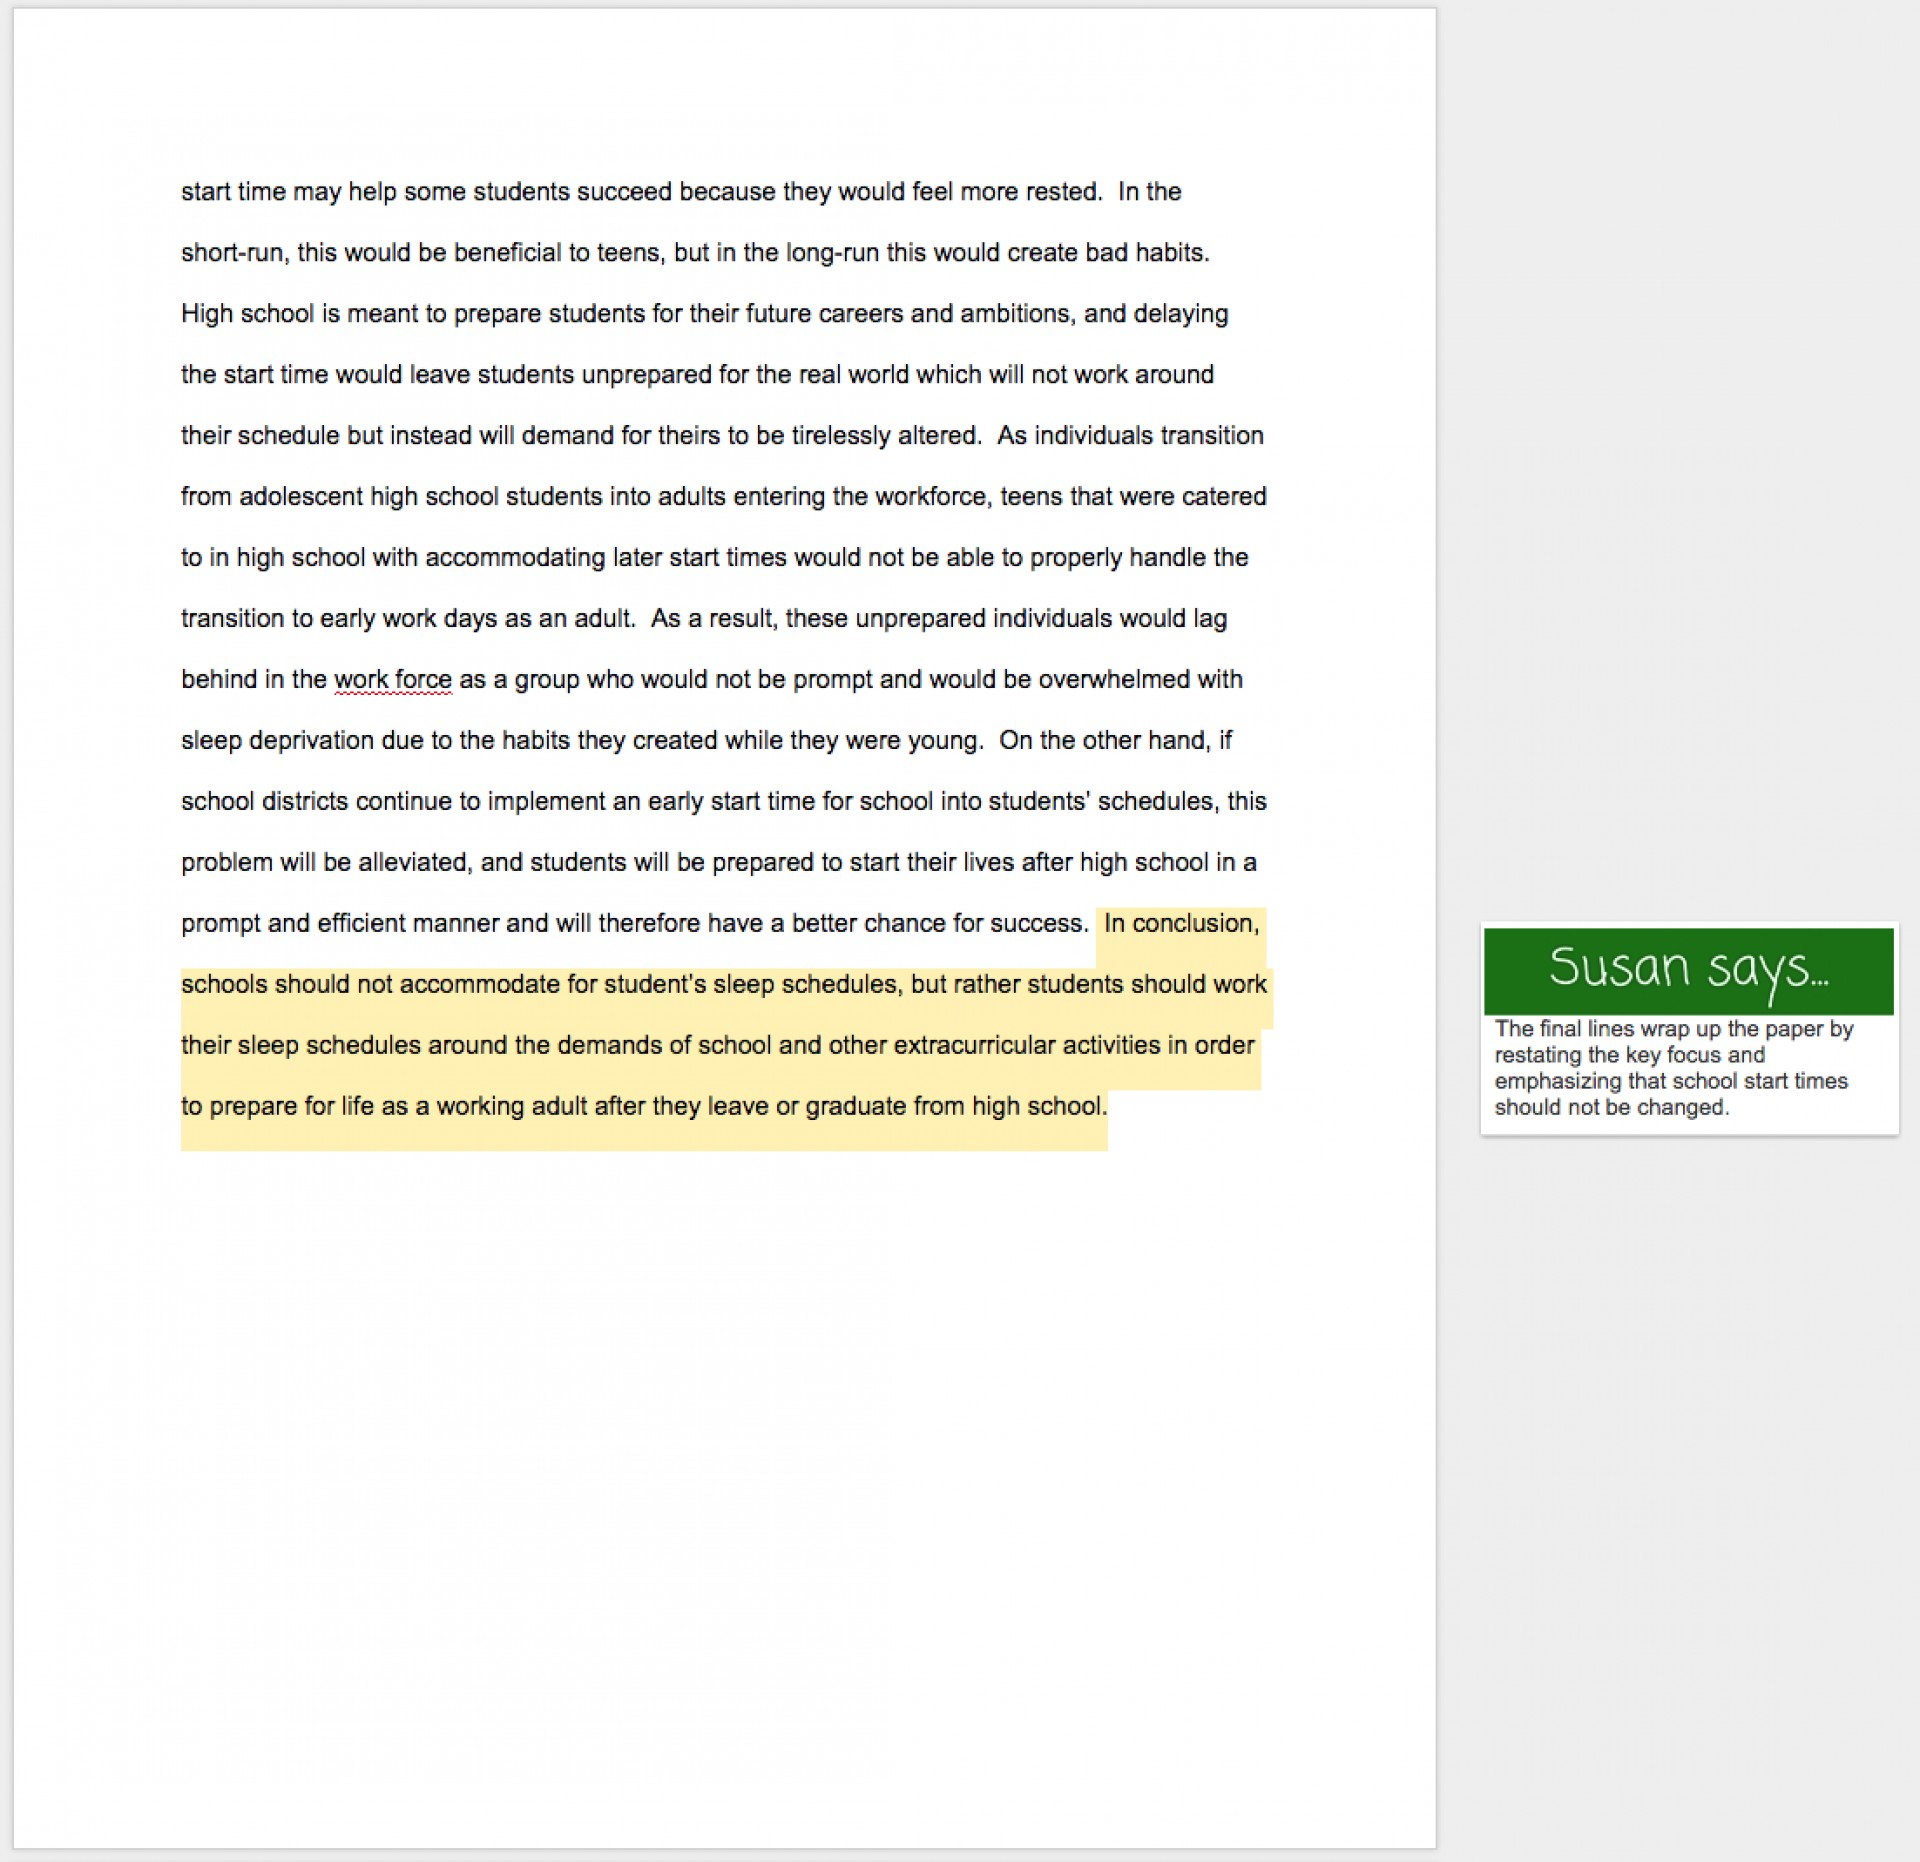 006 Essay Example How To Conclude An Top Argumentative Teach Writing Write A Closing Paragraph For Step By Ppt Middle School 1920